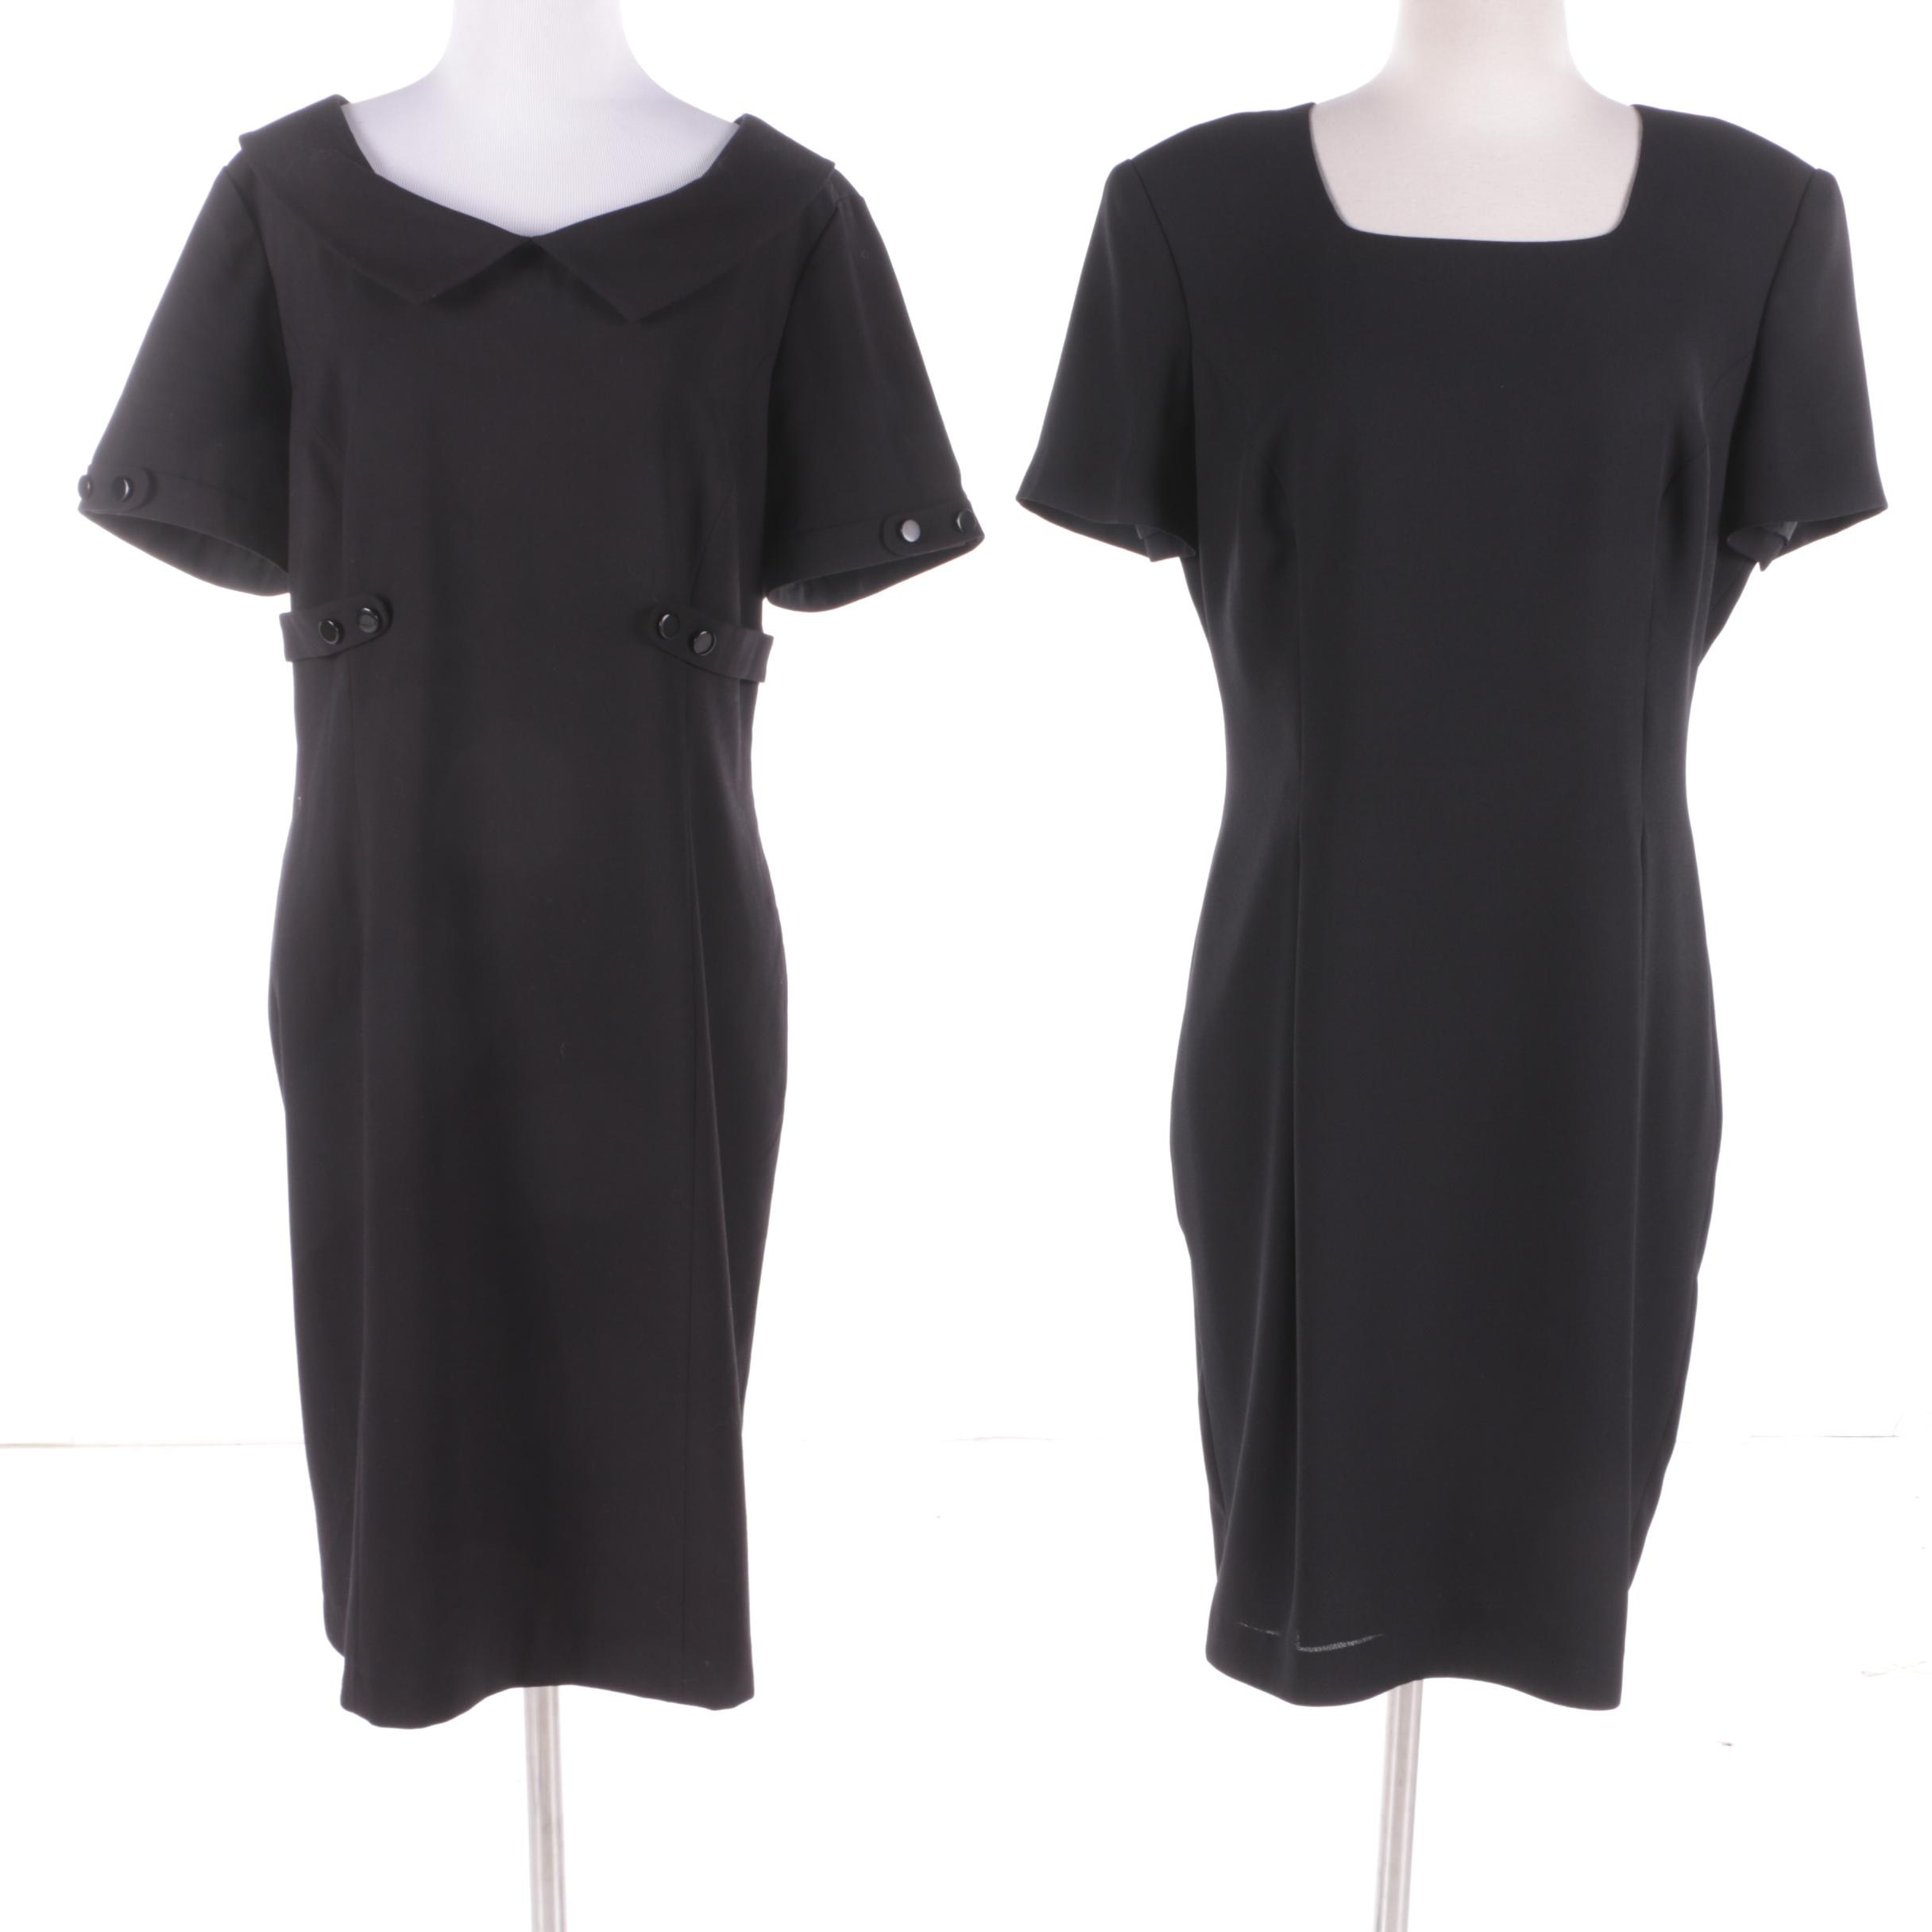 Black Dresses Including Maggy London and Studio Tahari